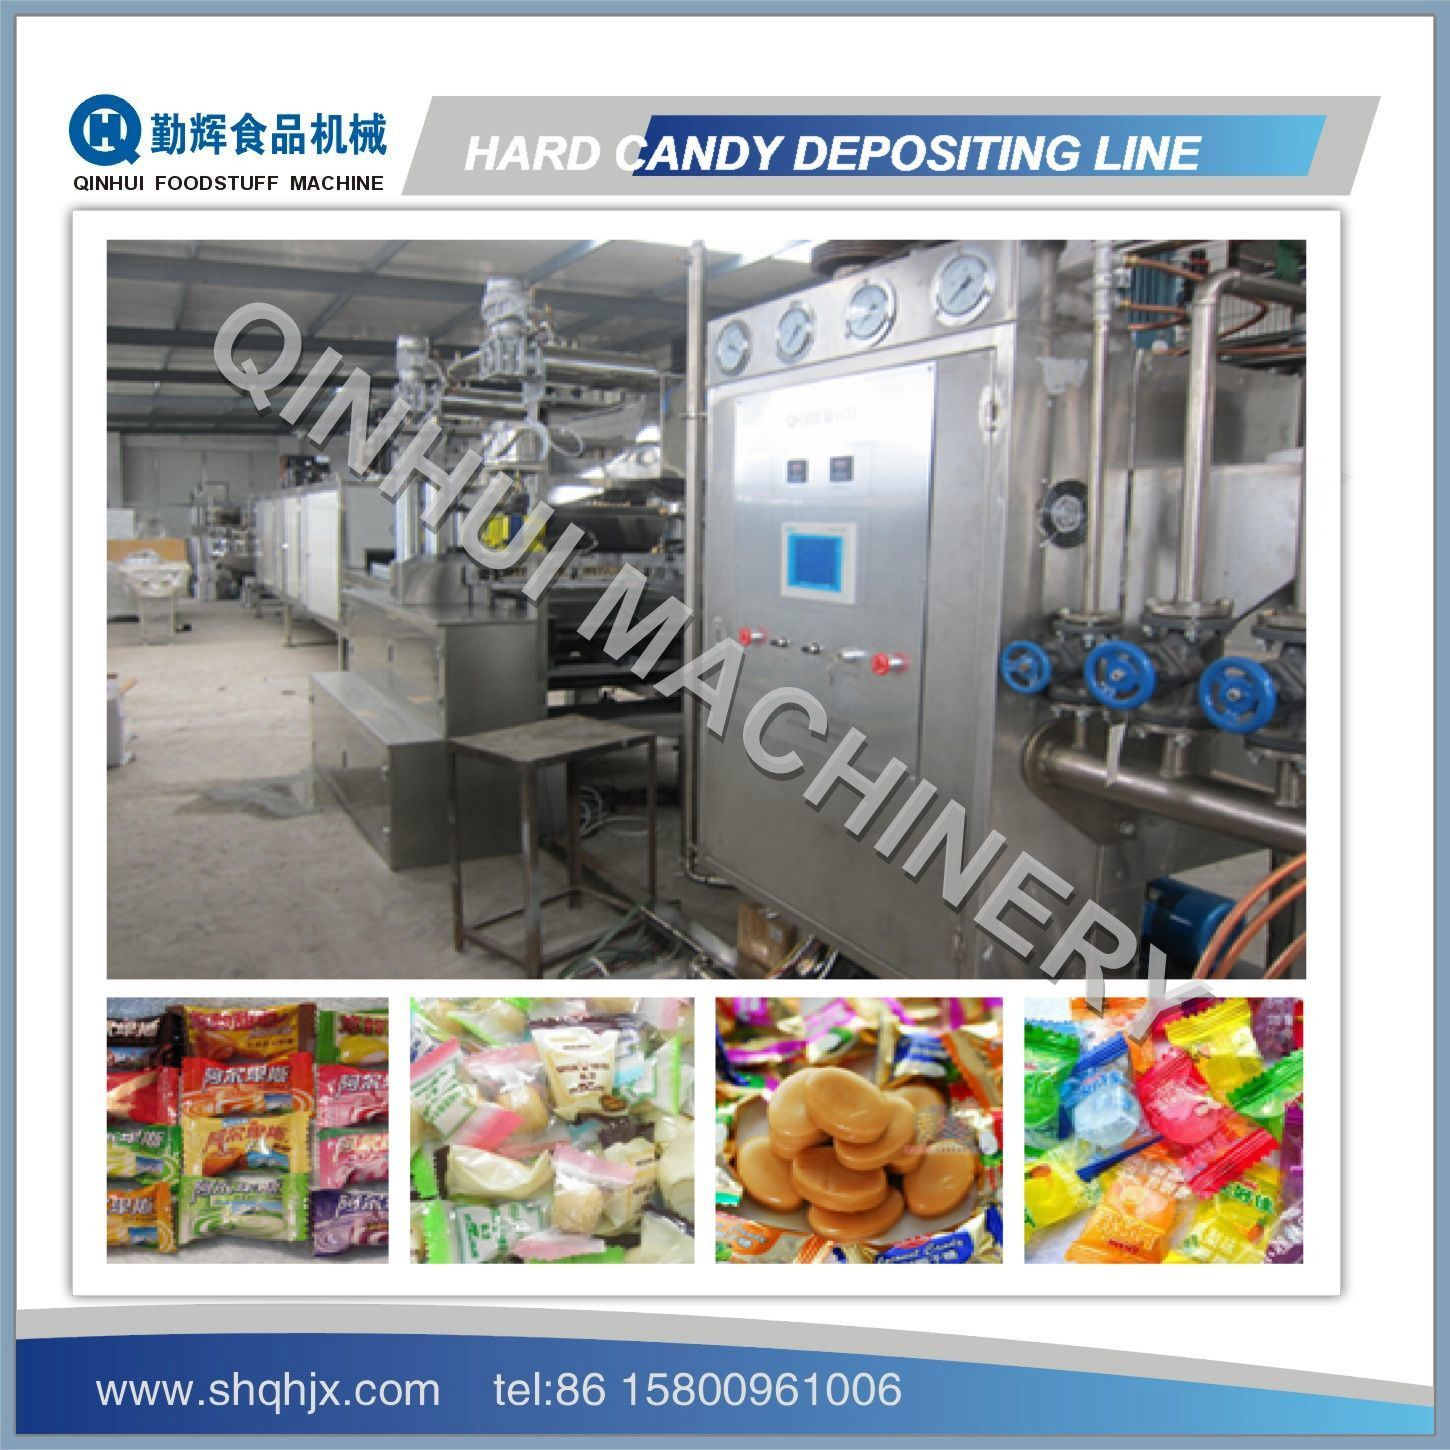 PLC Control&Full Automatic Depositing Machine for Hard Candy